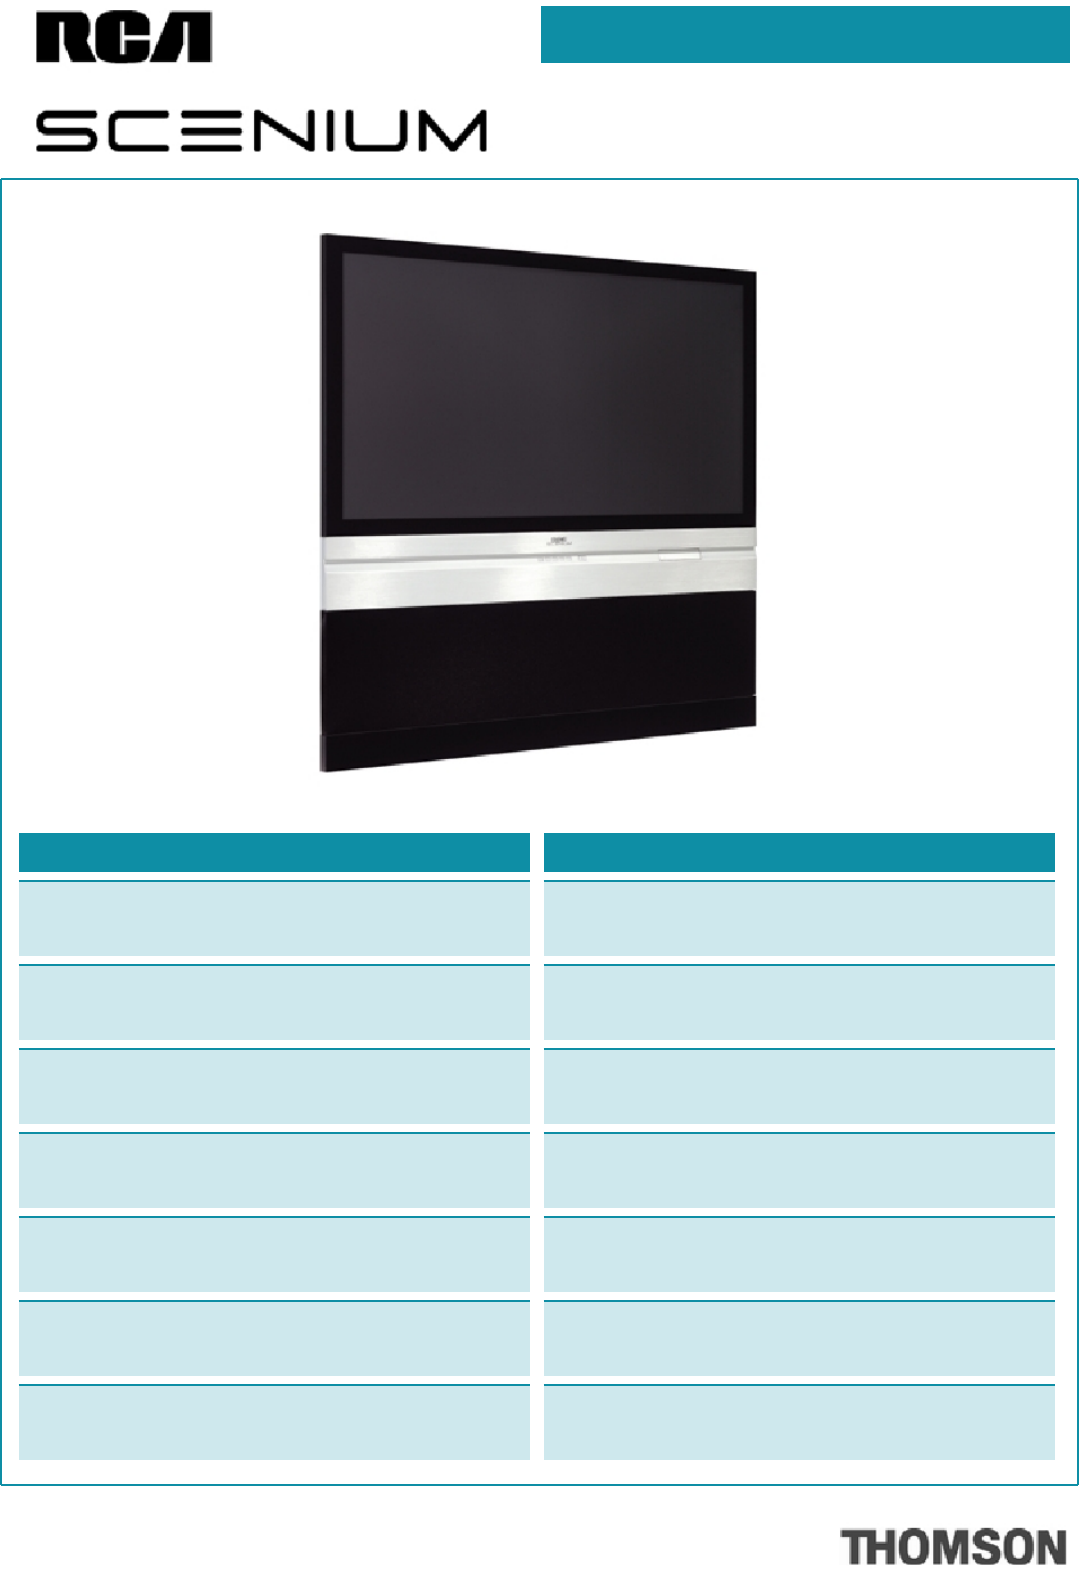 RCA HD56W151 Flat Panel Television User Manual